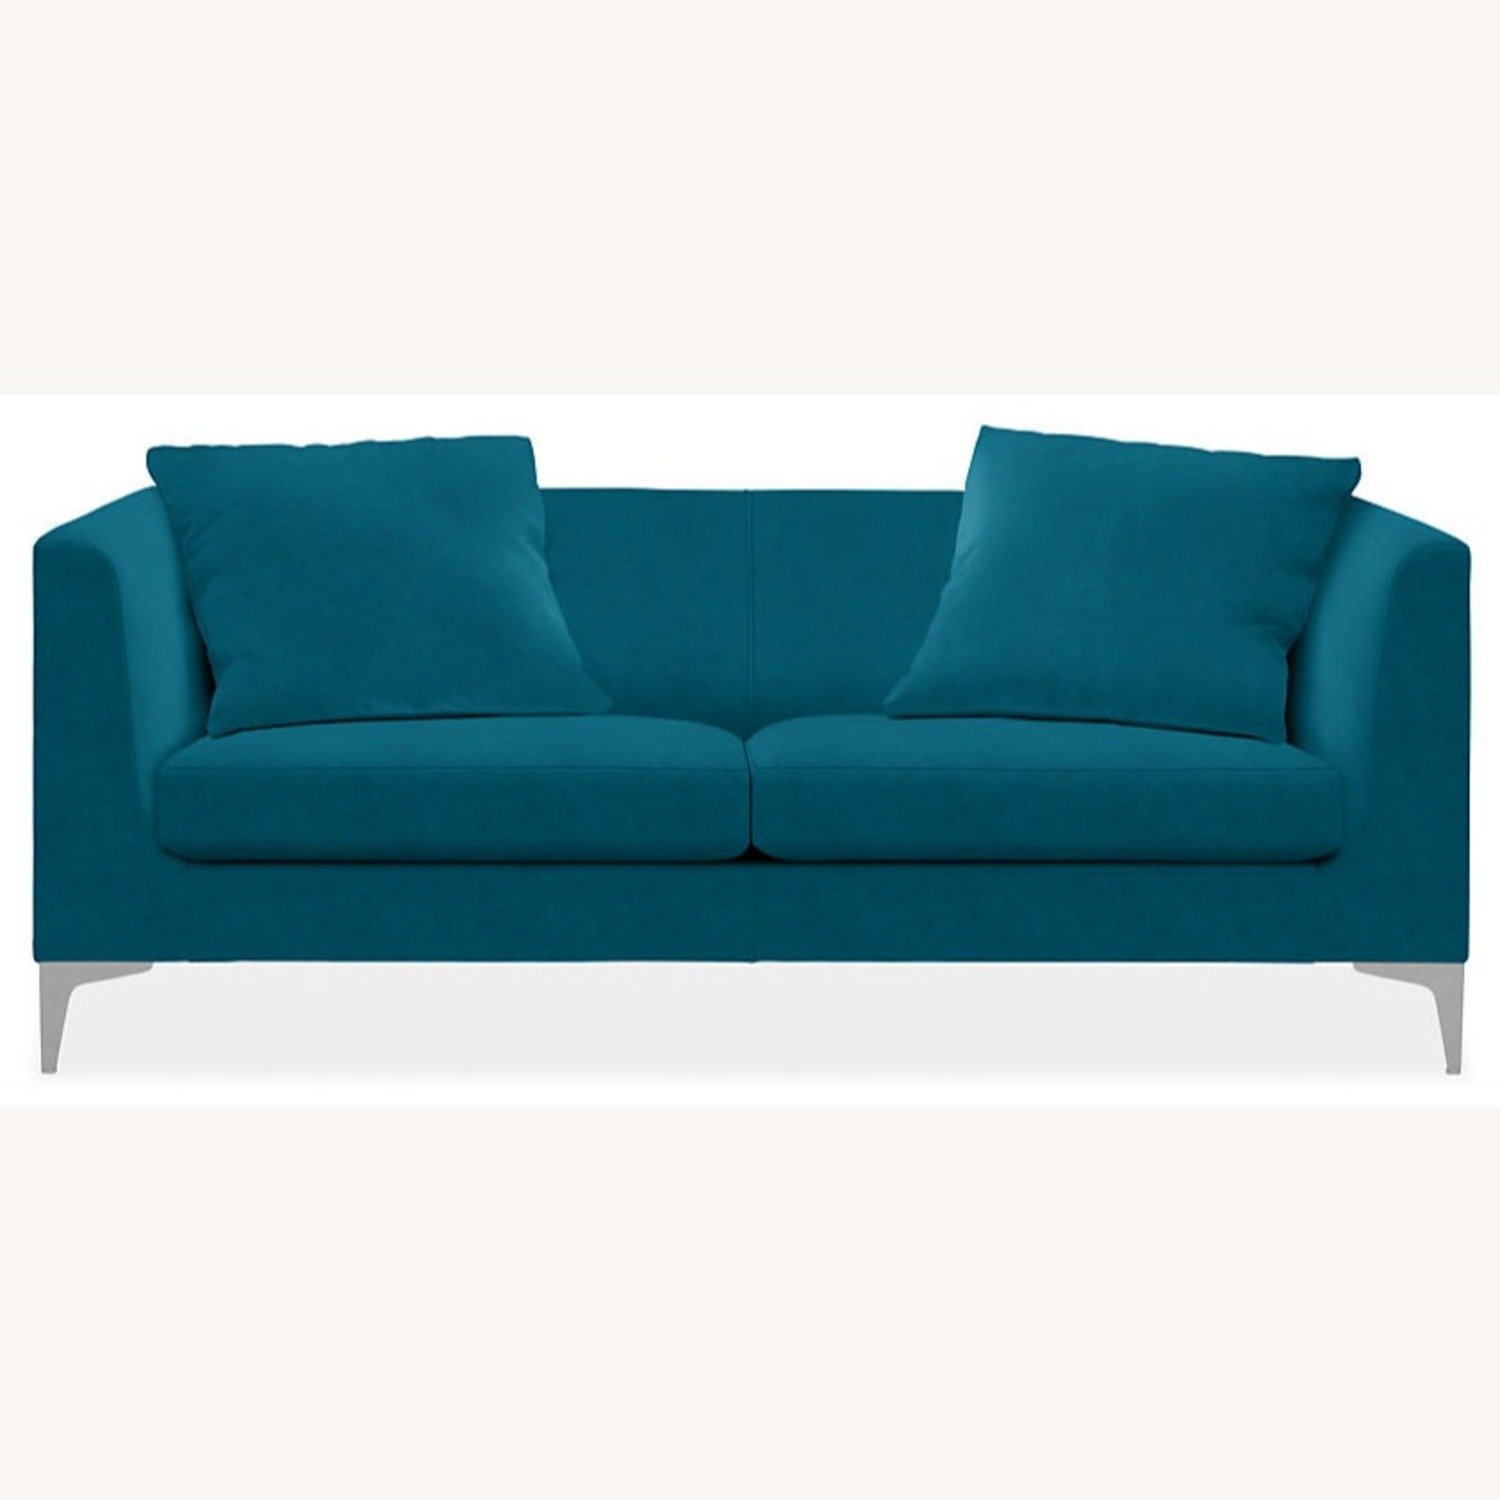 Room & Board Sterling Sofa - image-1